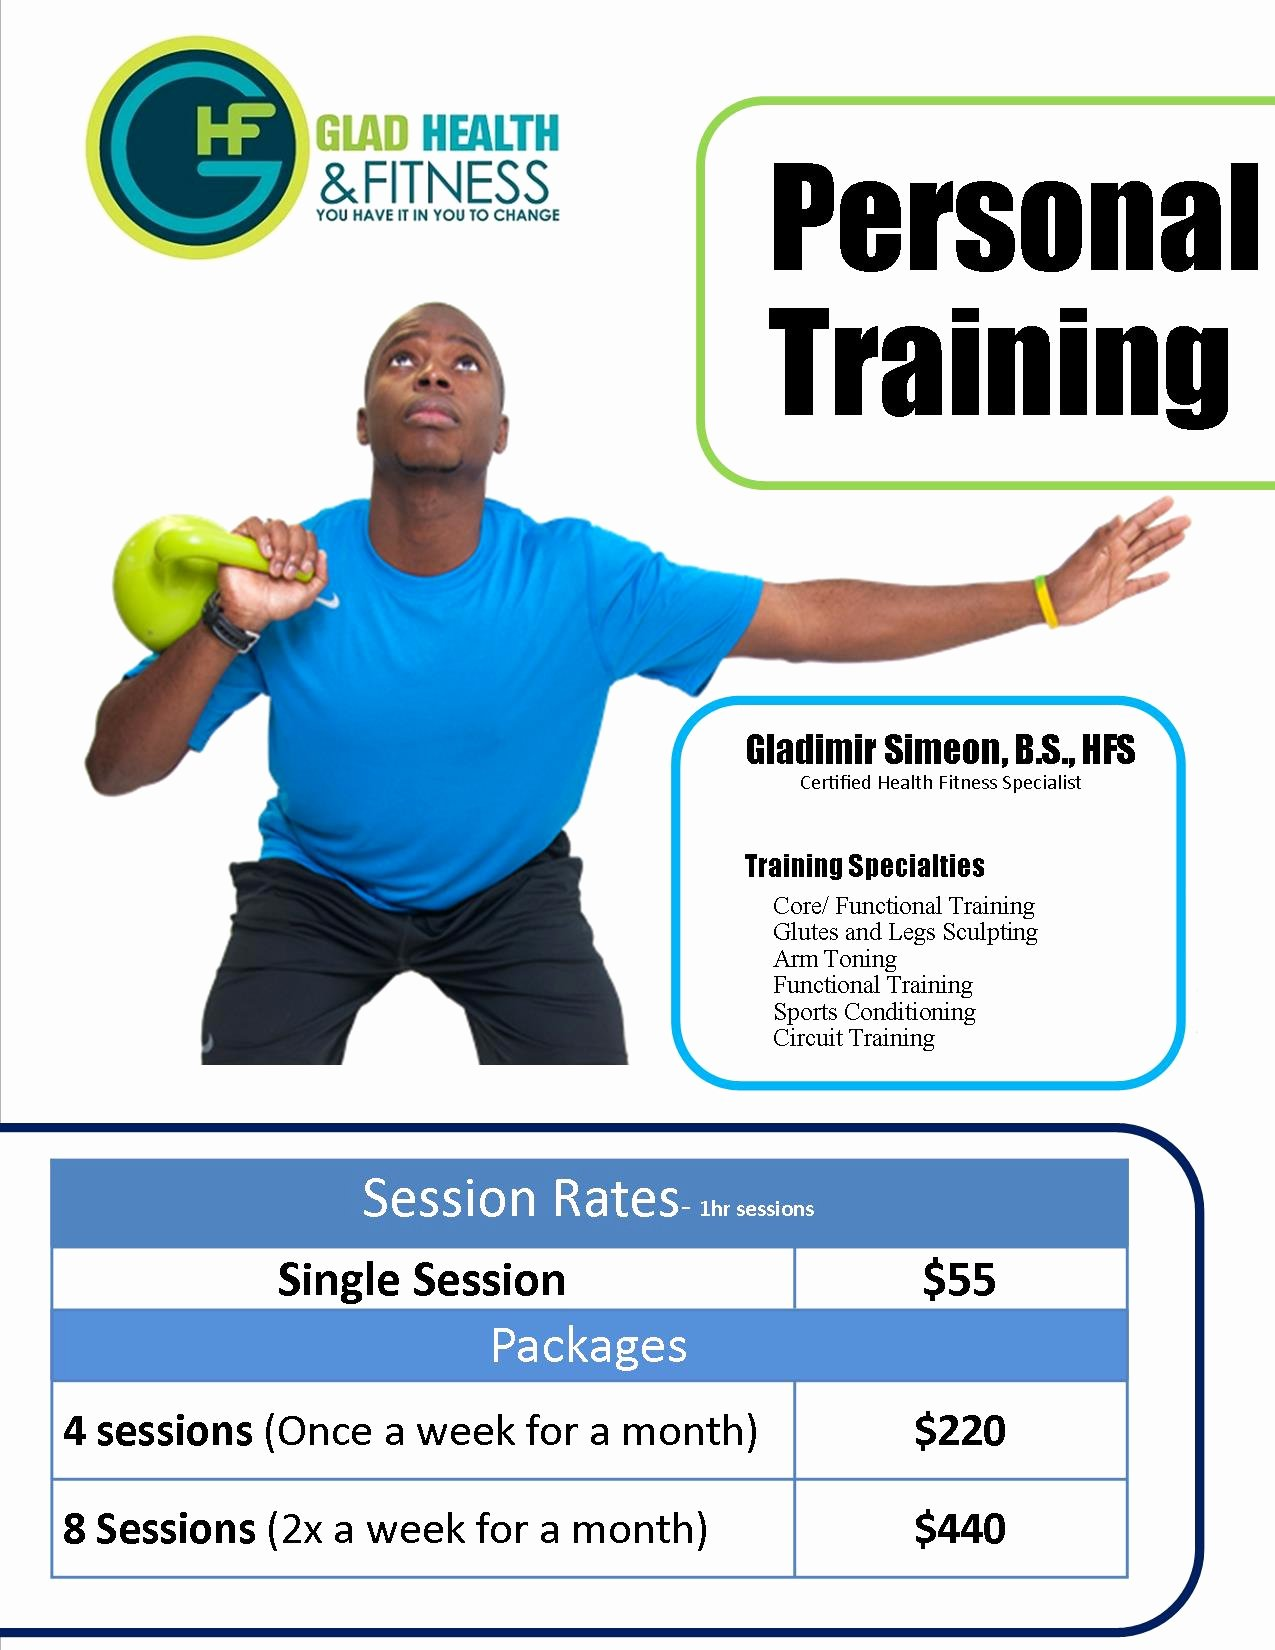 Personal Trainer Flyer Template Luxury Personal Training Flyers Templates